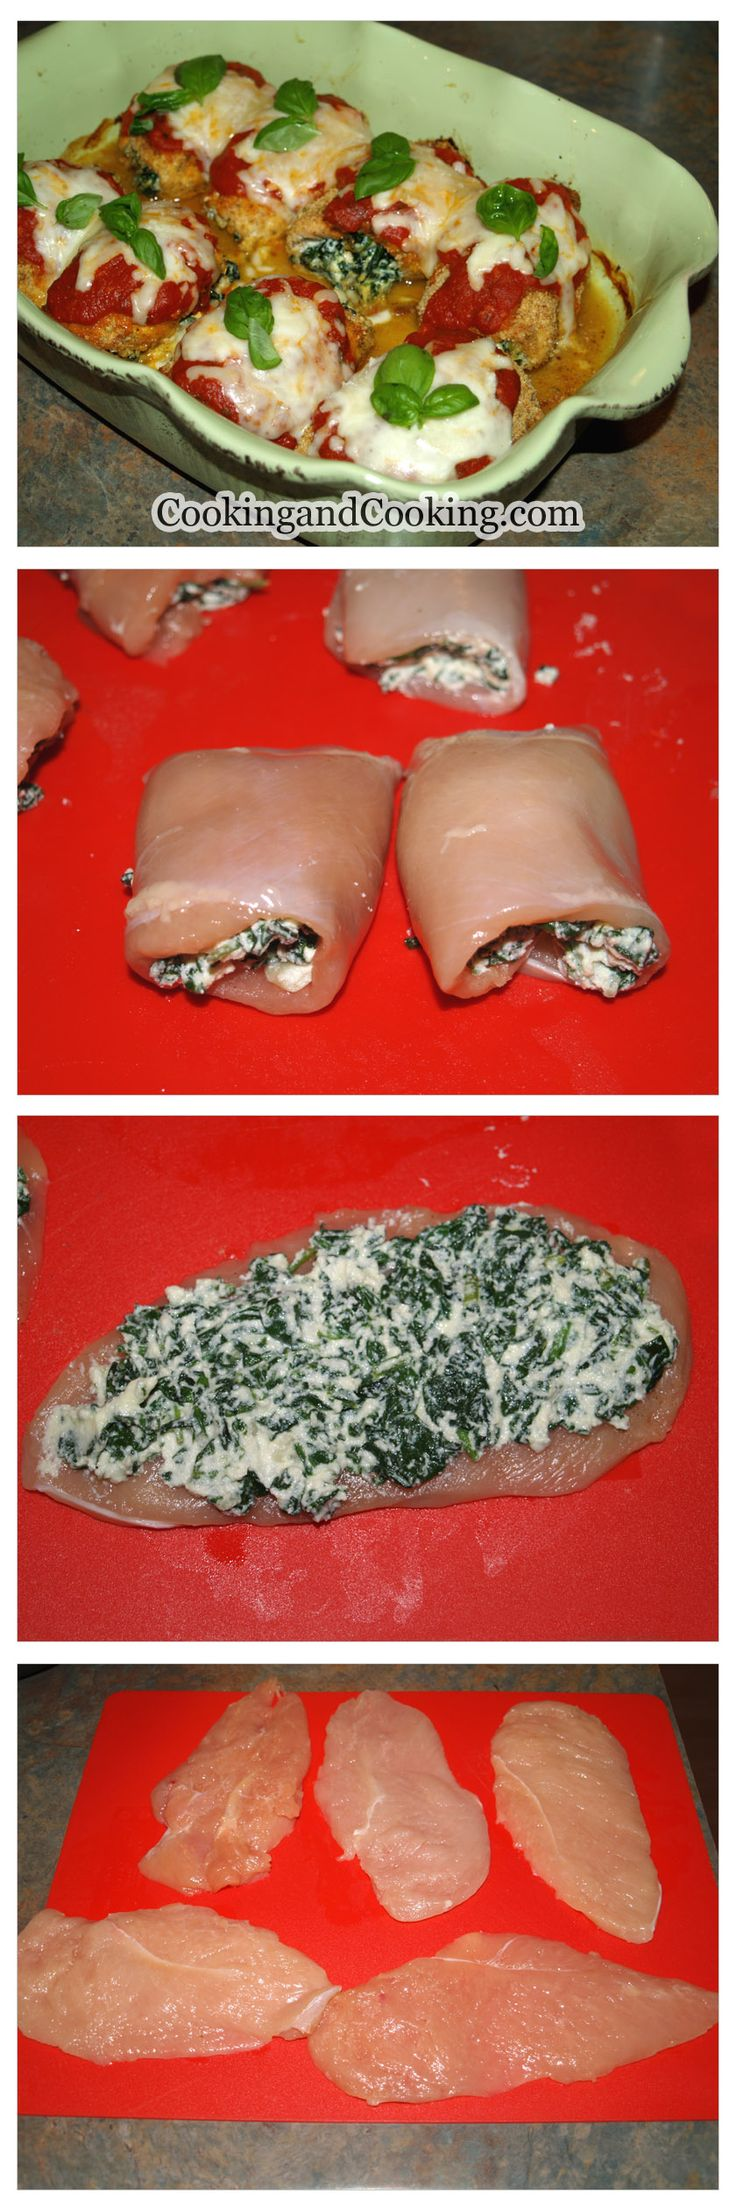 Spinach Chicken Roll Recipe Low carb...just leave out the bread crumbs